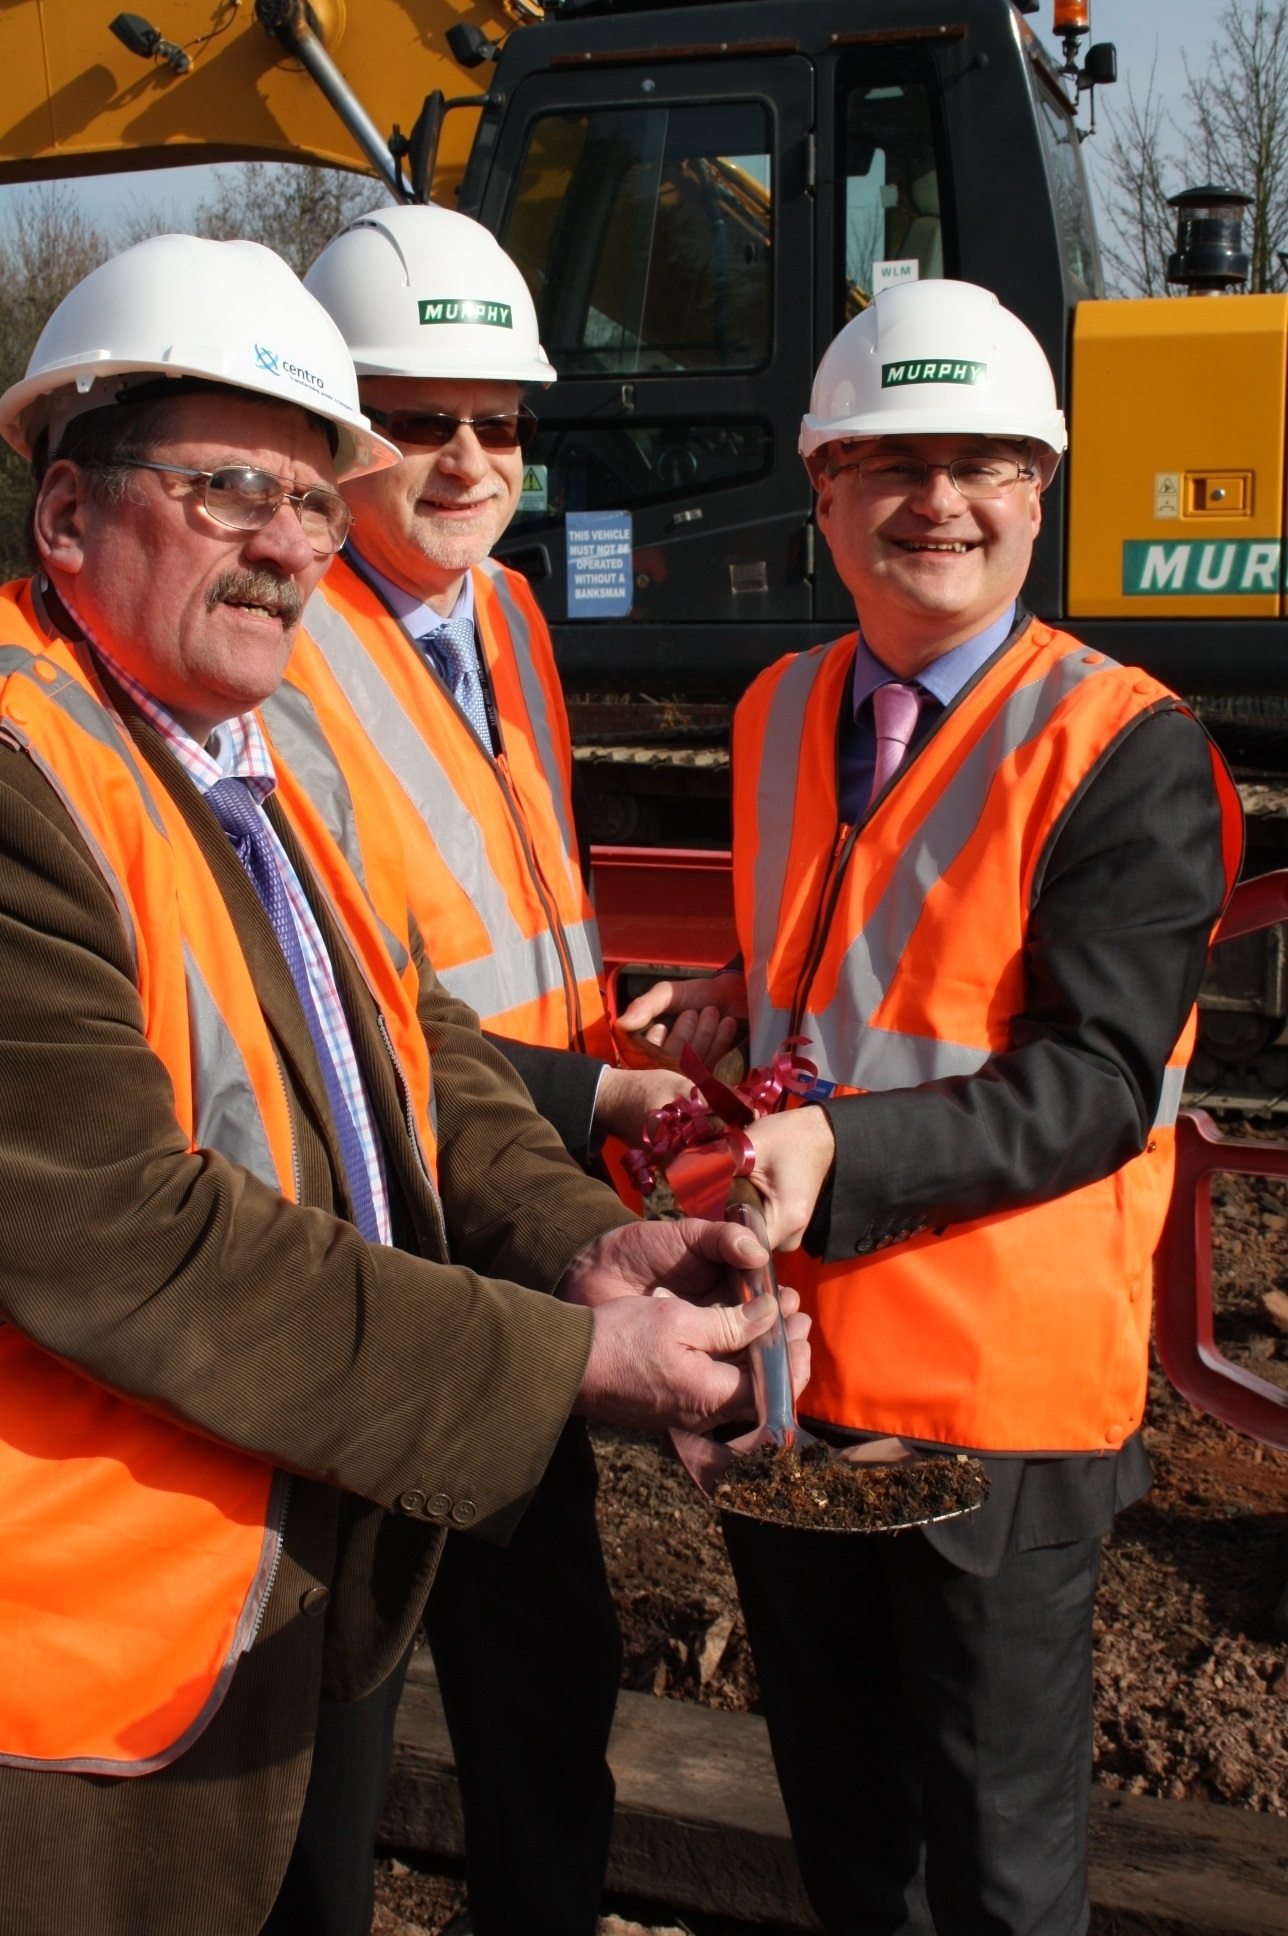 left to right - Cllr Roger Horton (Centro Lead Member for Rail), Rod Sillence (Sponsor at Network Rail) and Cllr Simon Geraghty (County Council Deputy Leader and Cabinet Member for Economy, Skills and Infrastructure)